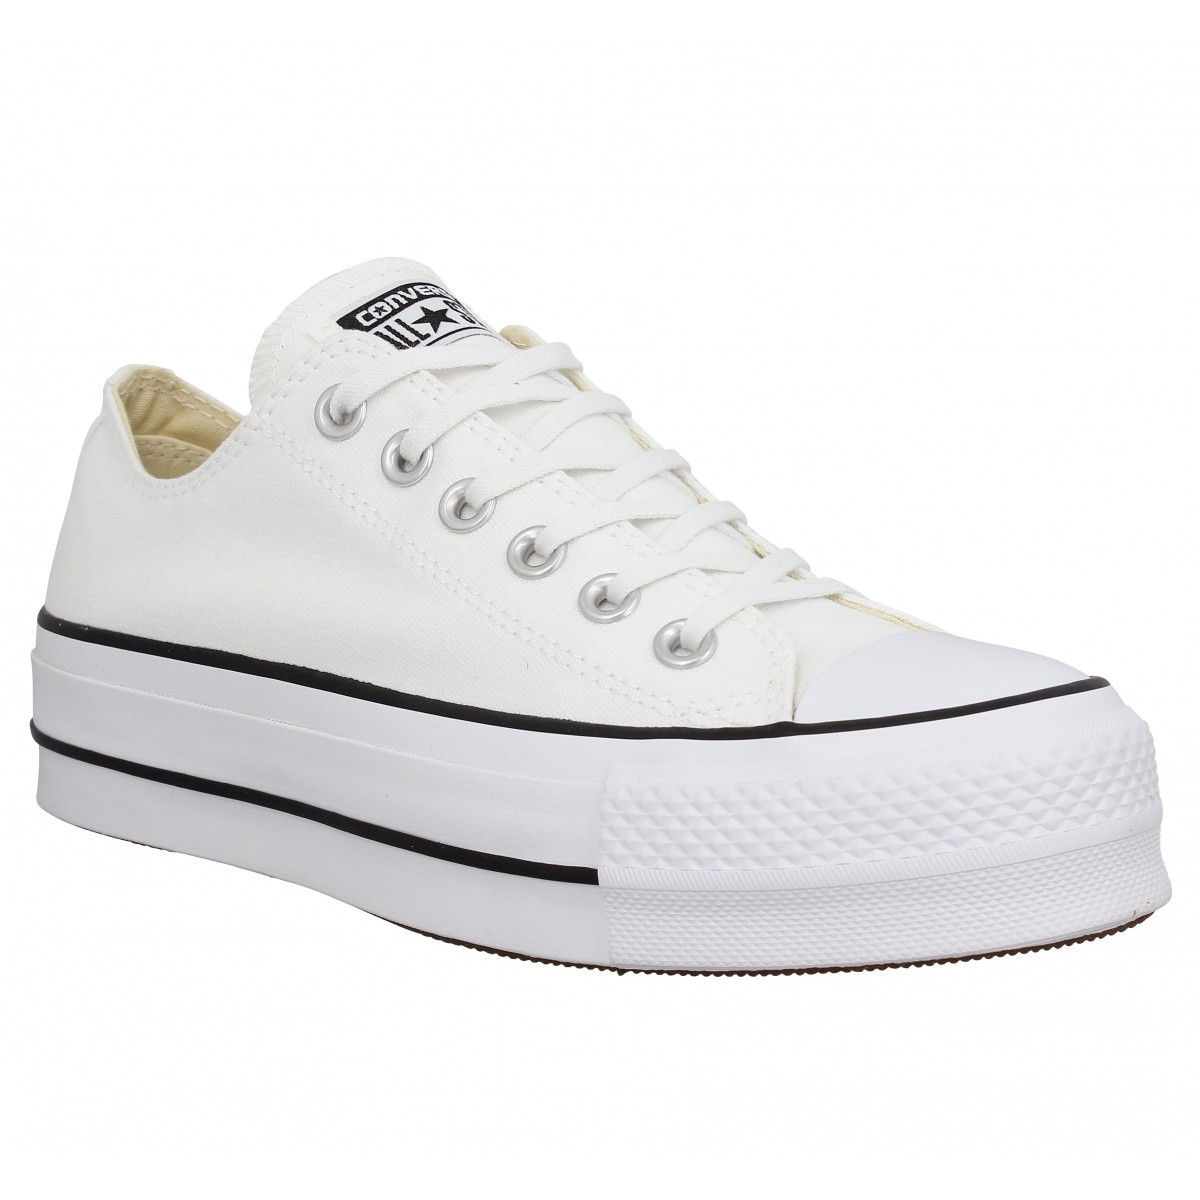 Baskets CONVERSE Chuck Taylor All Star Lift toile Femme Blanc